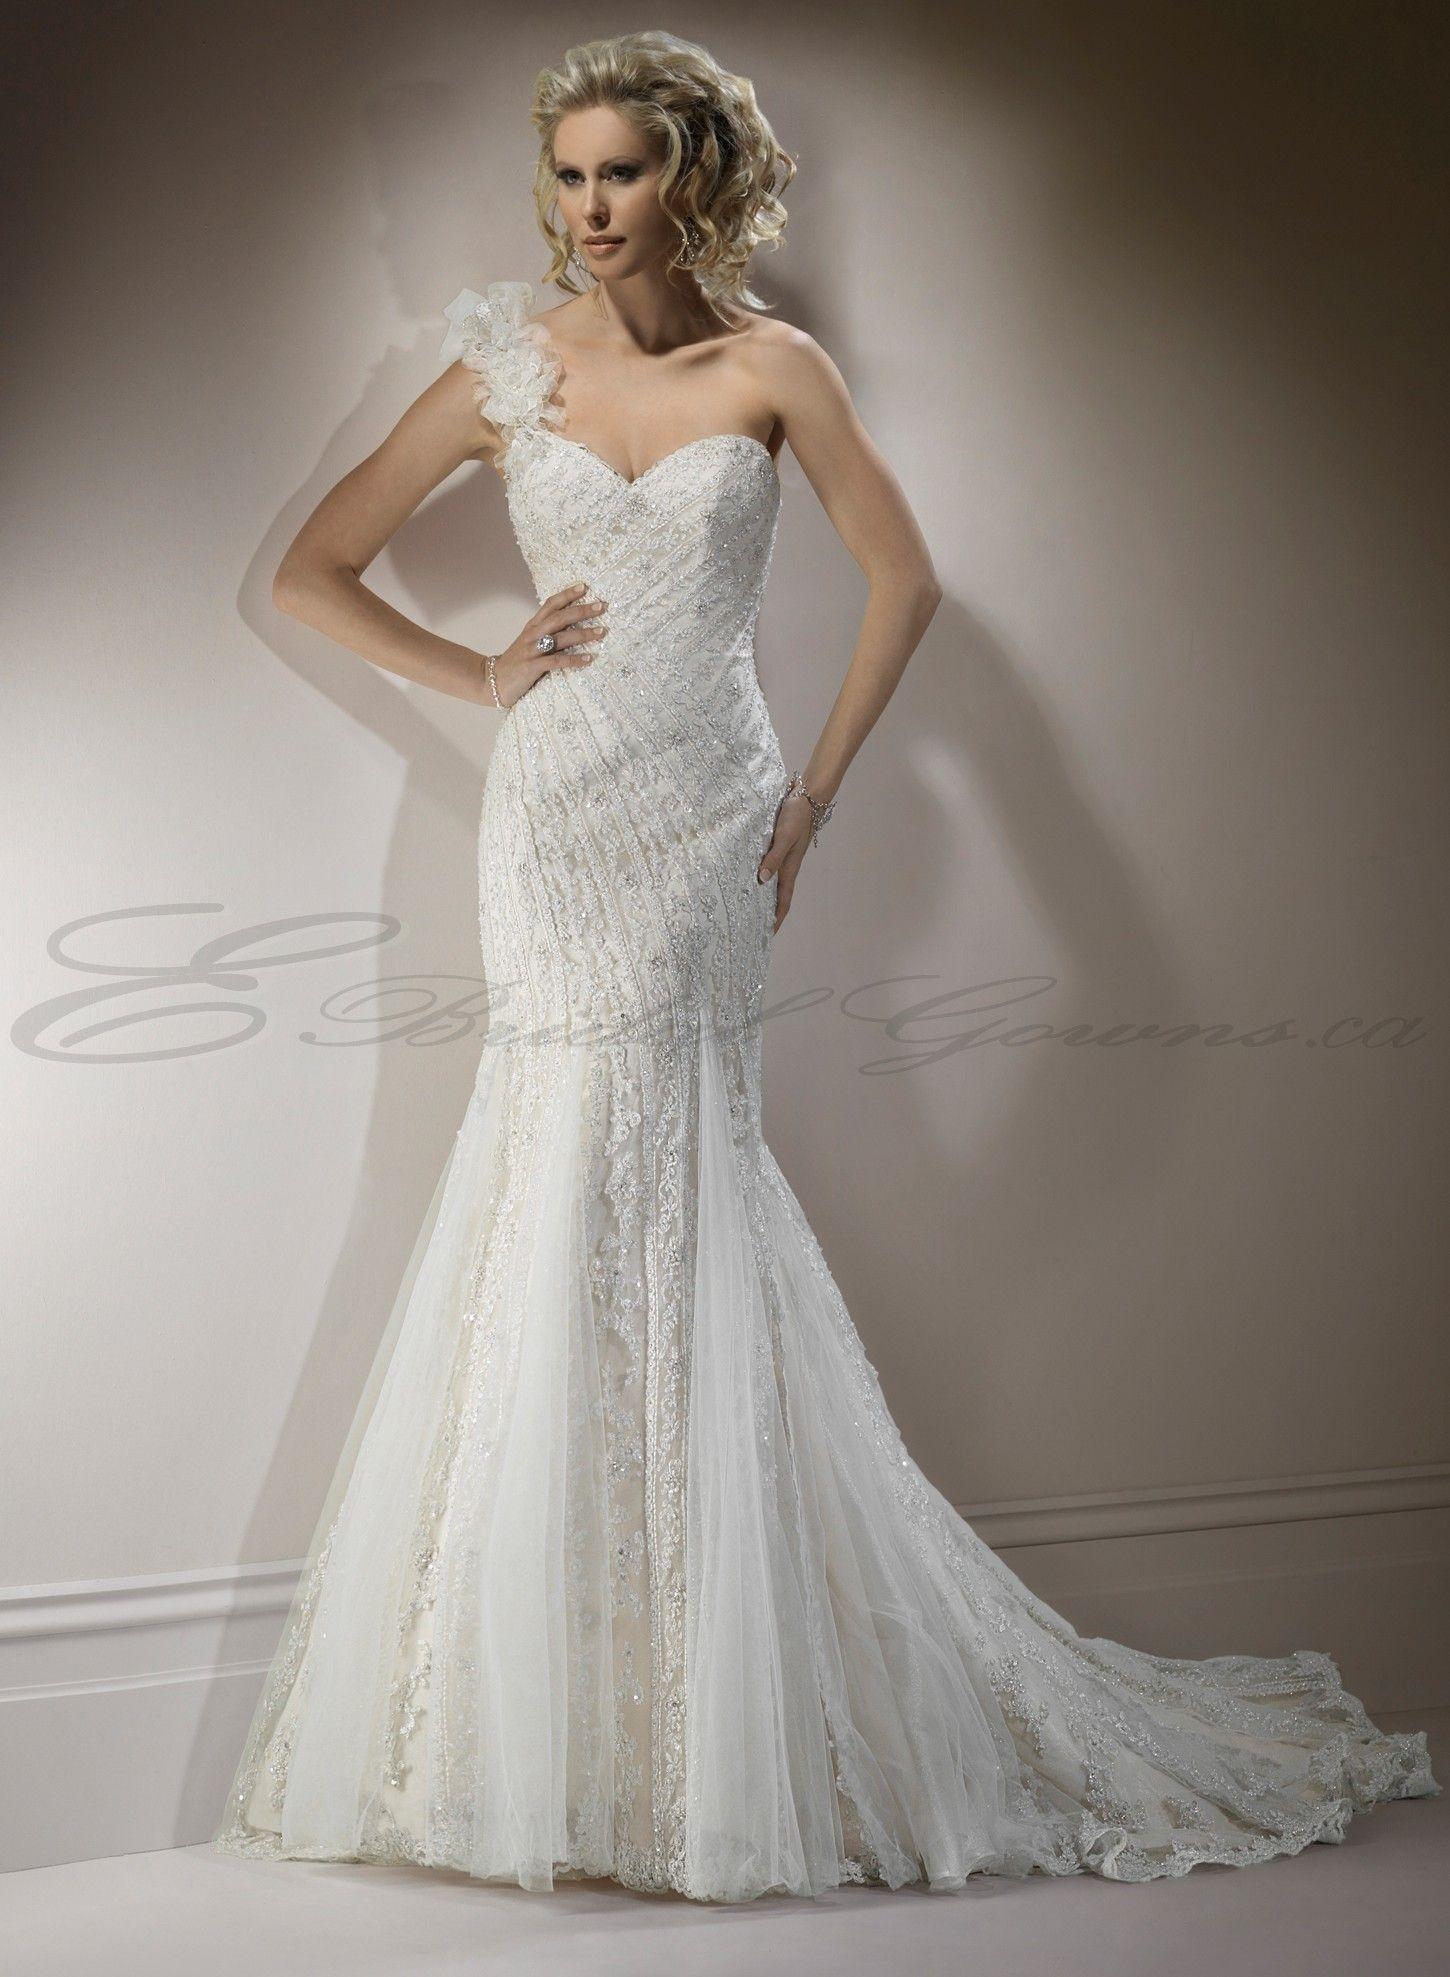 mermaid wedding gowns Mermaid Wedding Gowns Lace Mermaid Sweetheart Neckline Fit and Flare Wedding Dress Canada